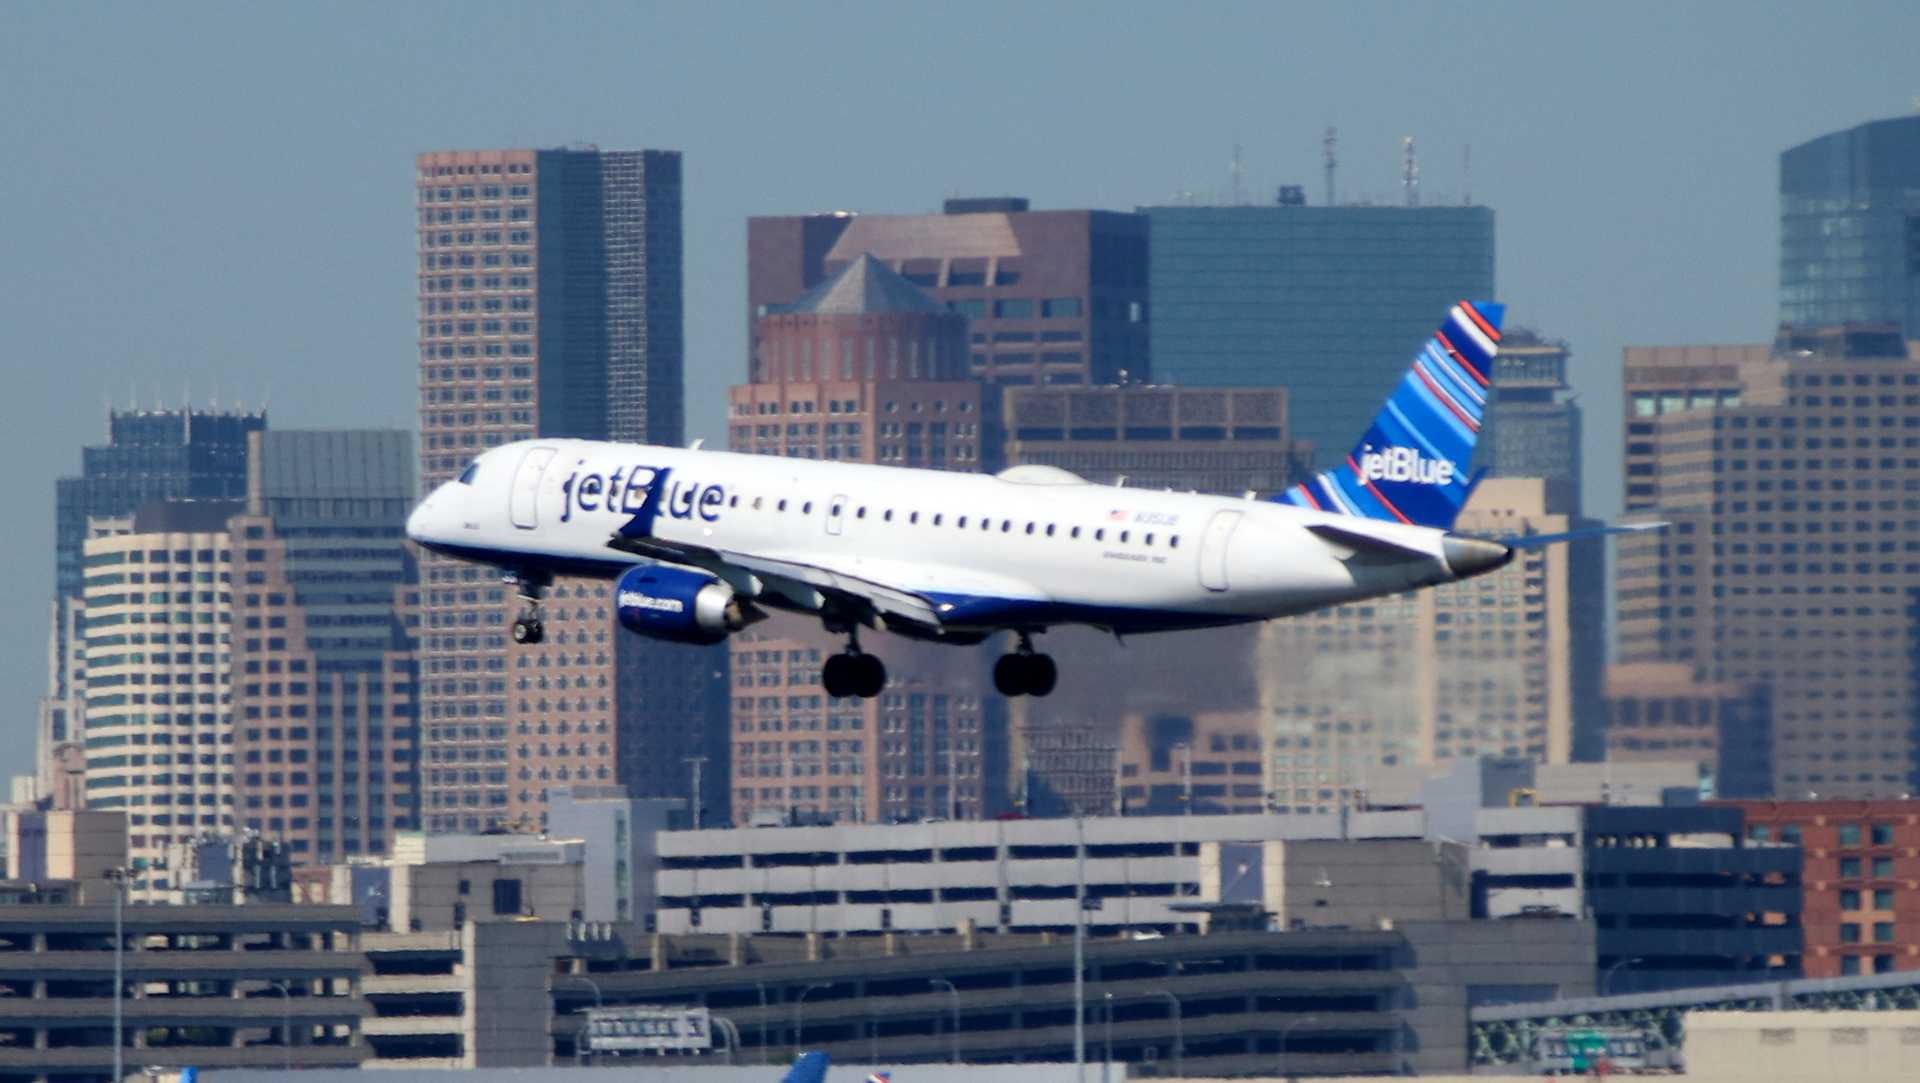 A JetBlue plane lands at Logan Airport in Boston.